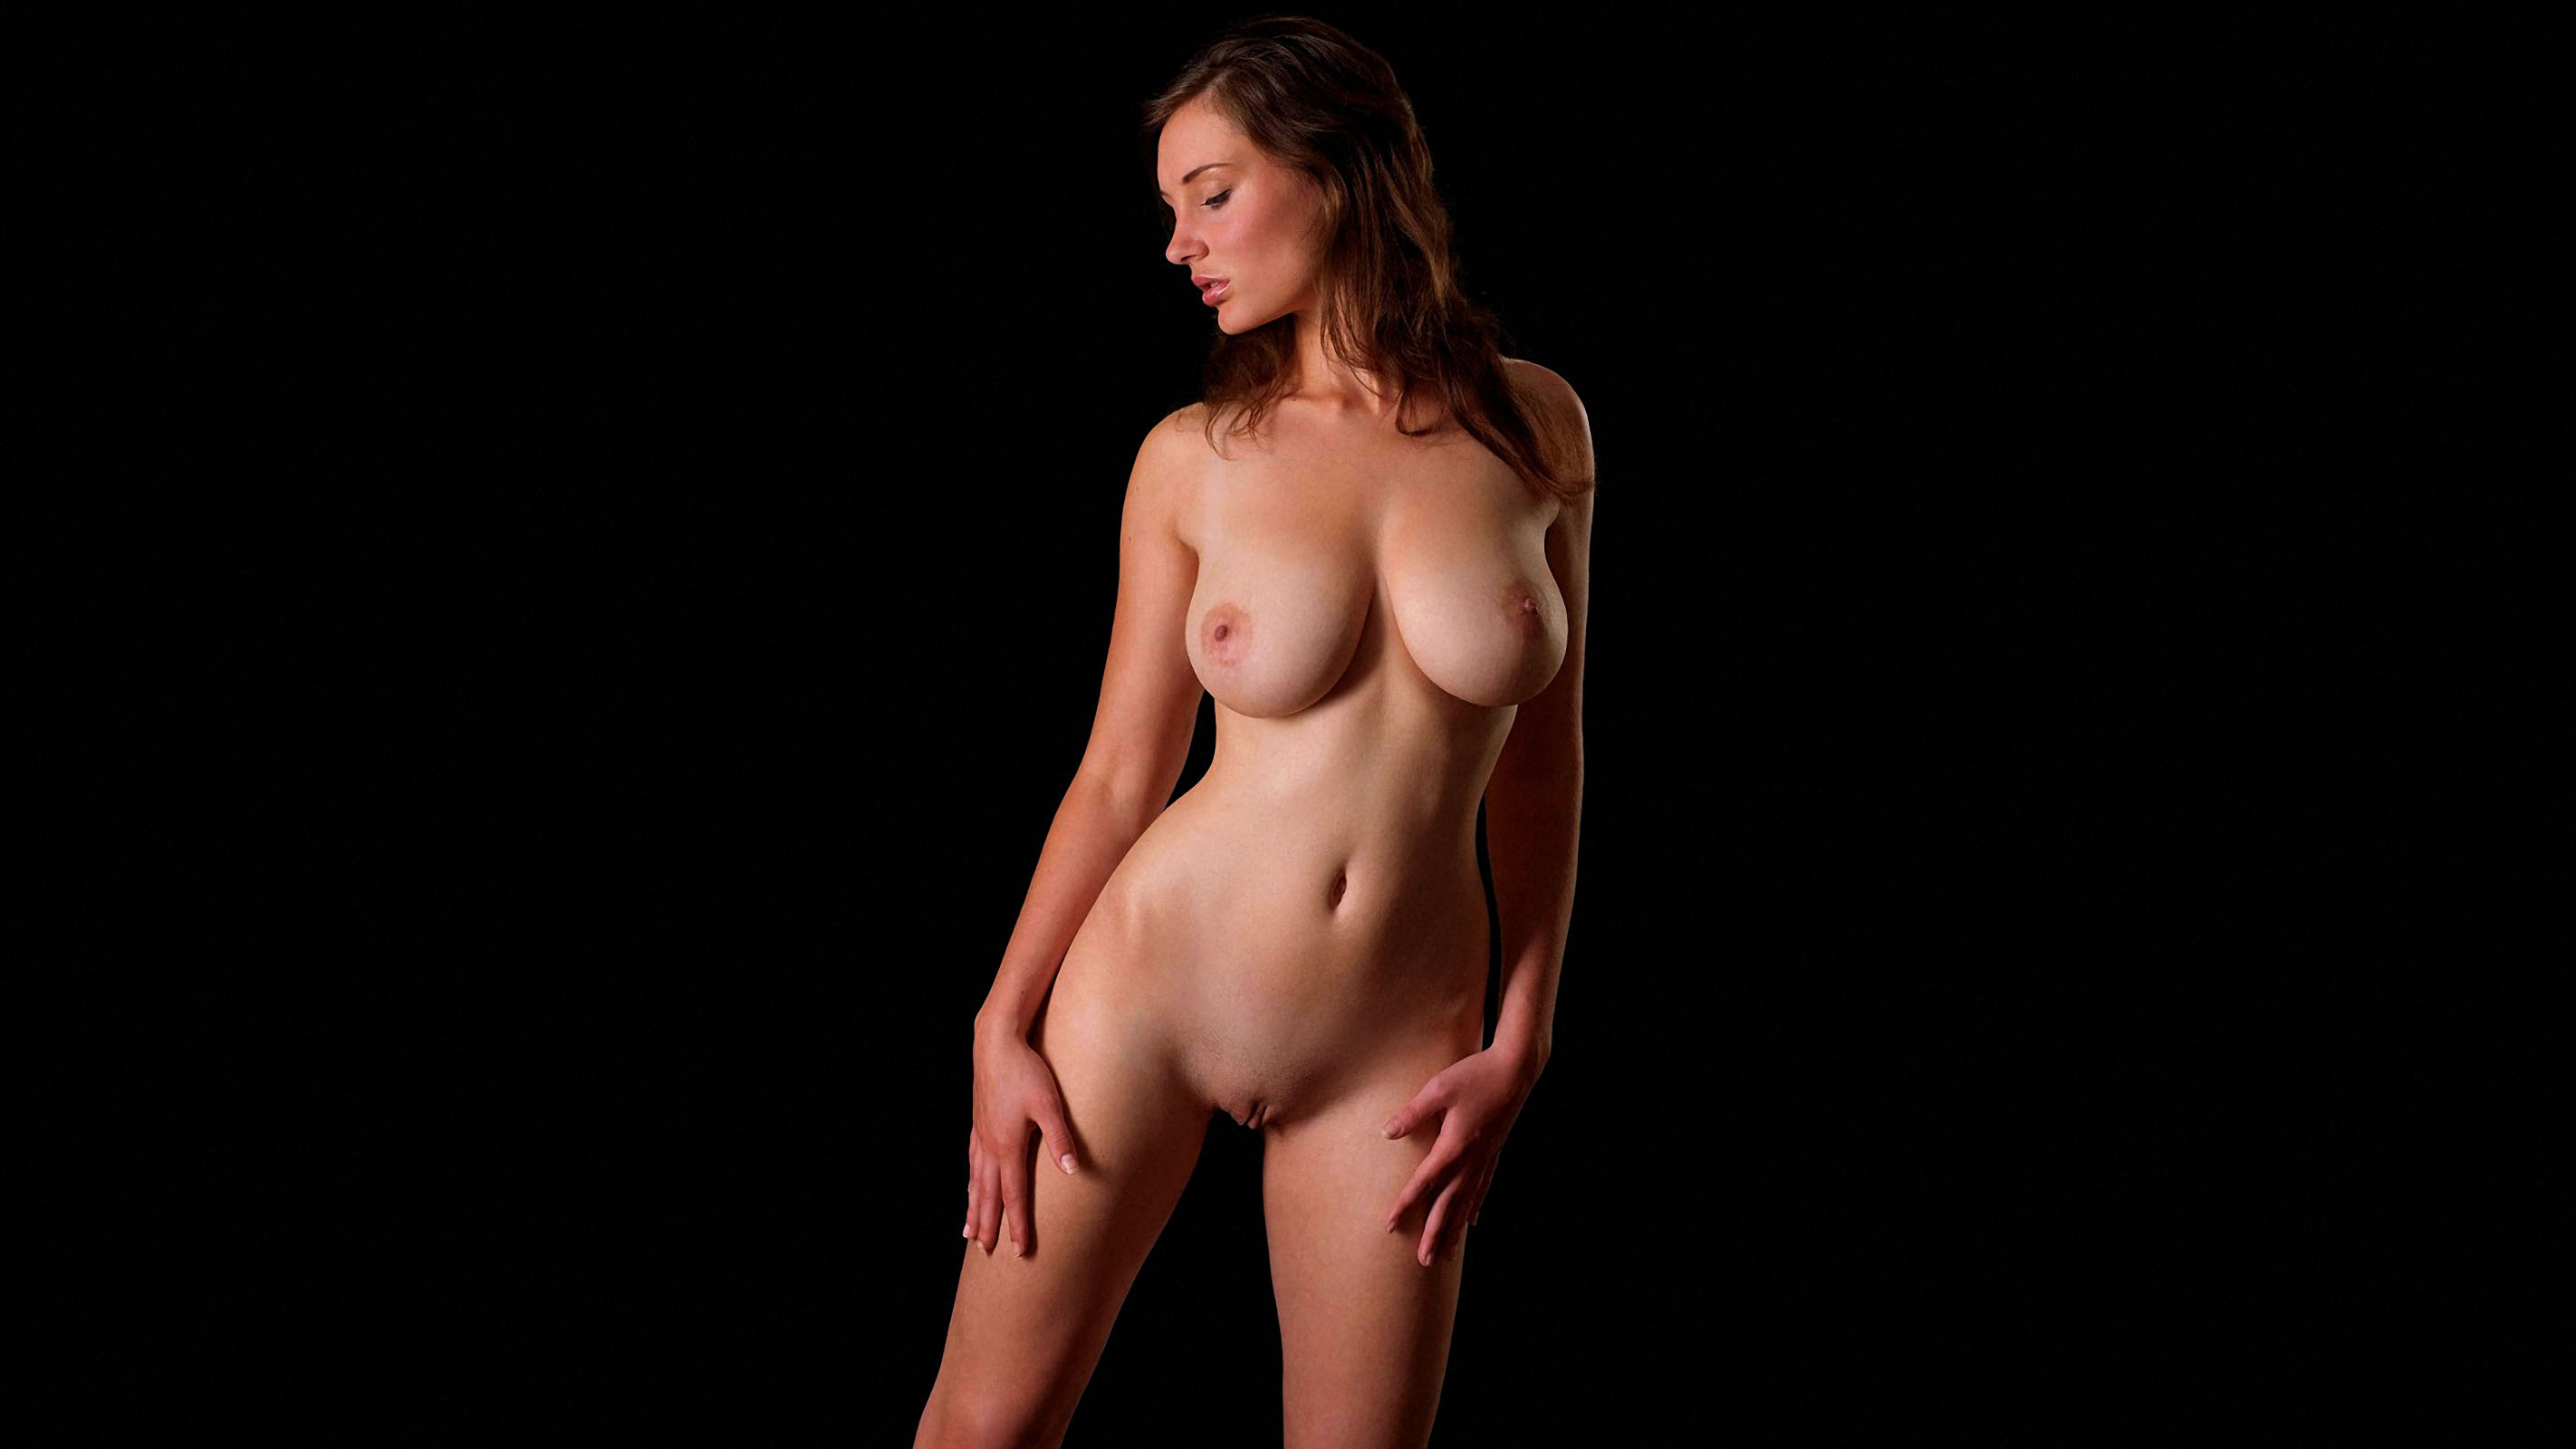 Adult boobs naked wallpaper adult movie